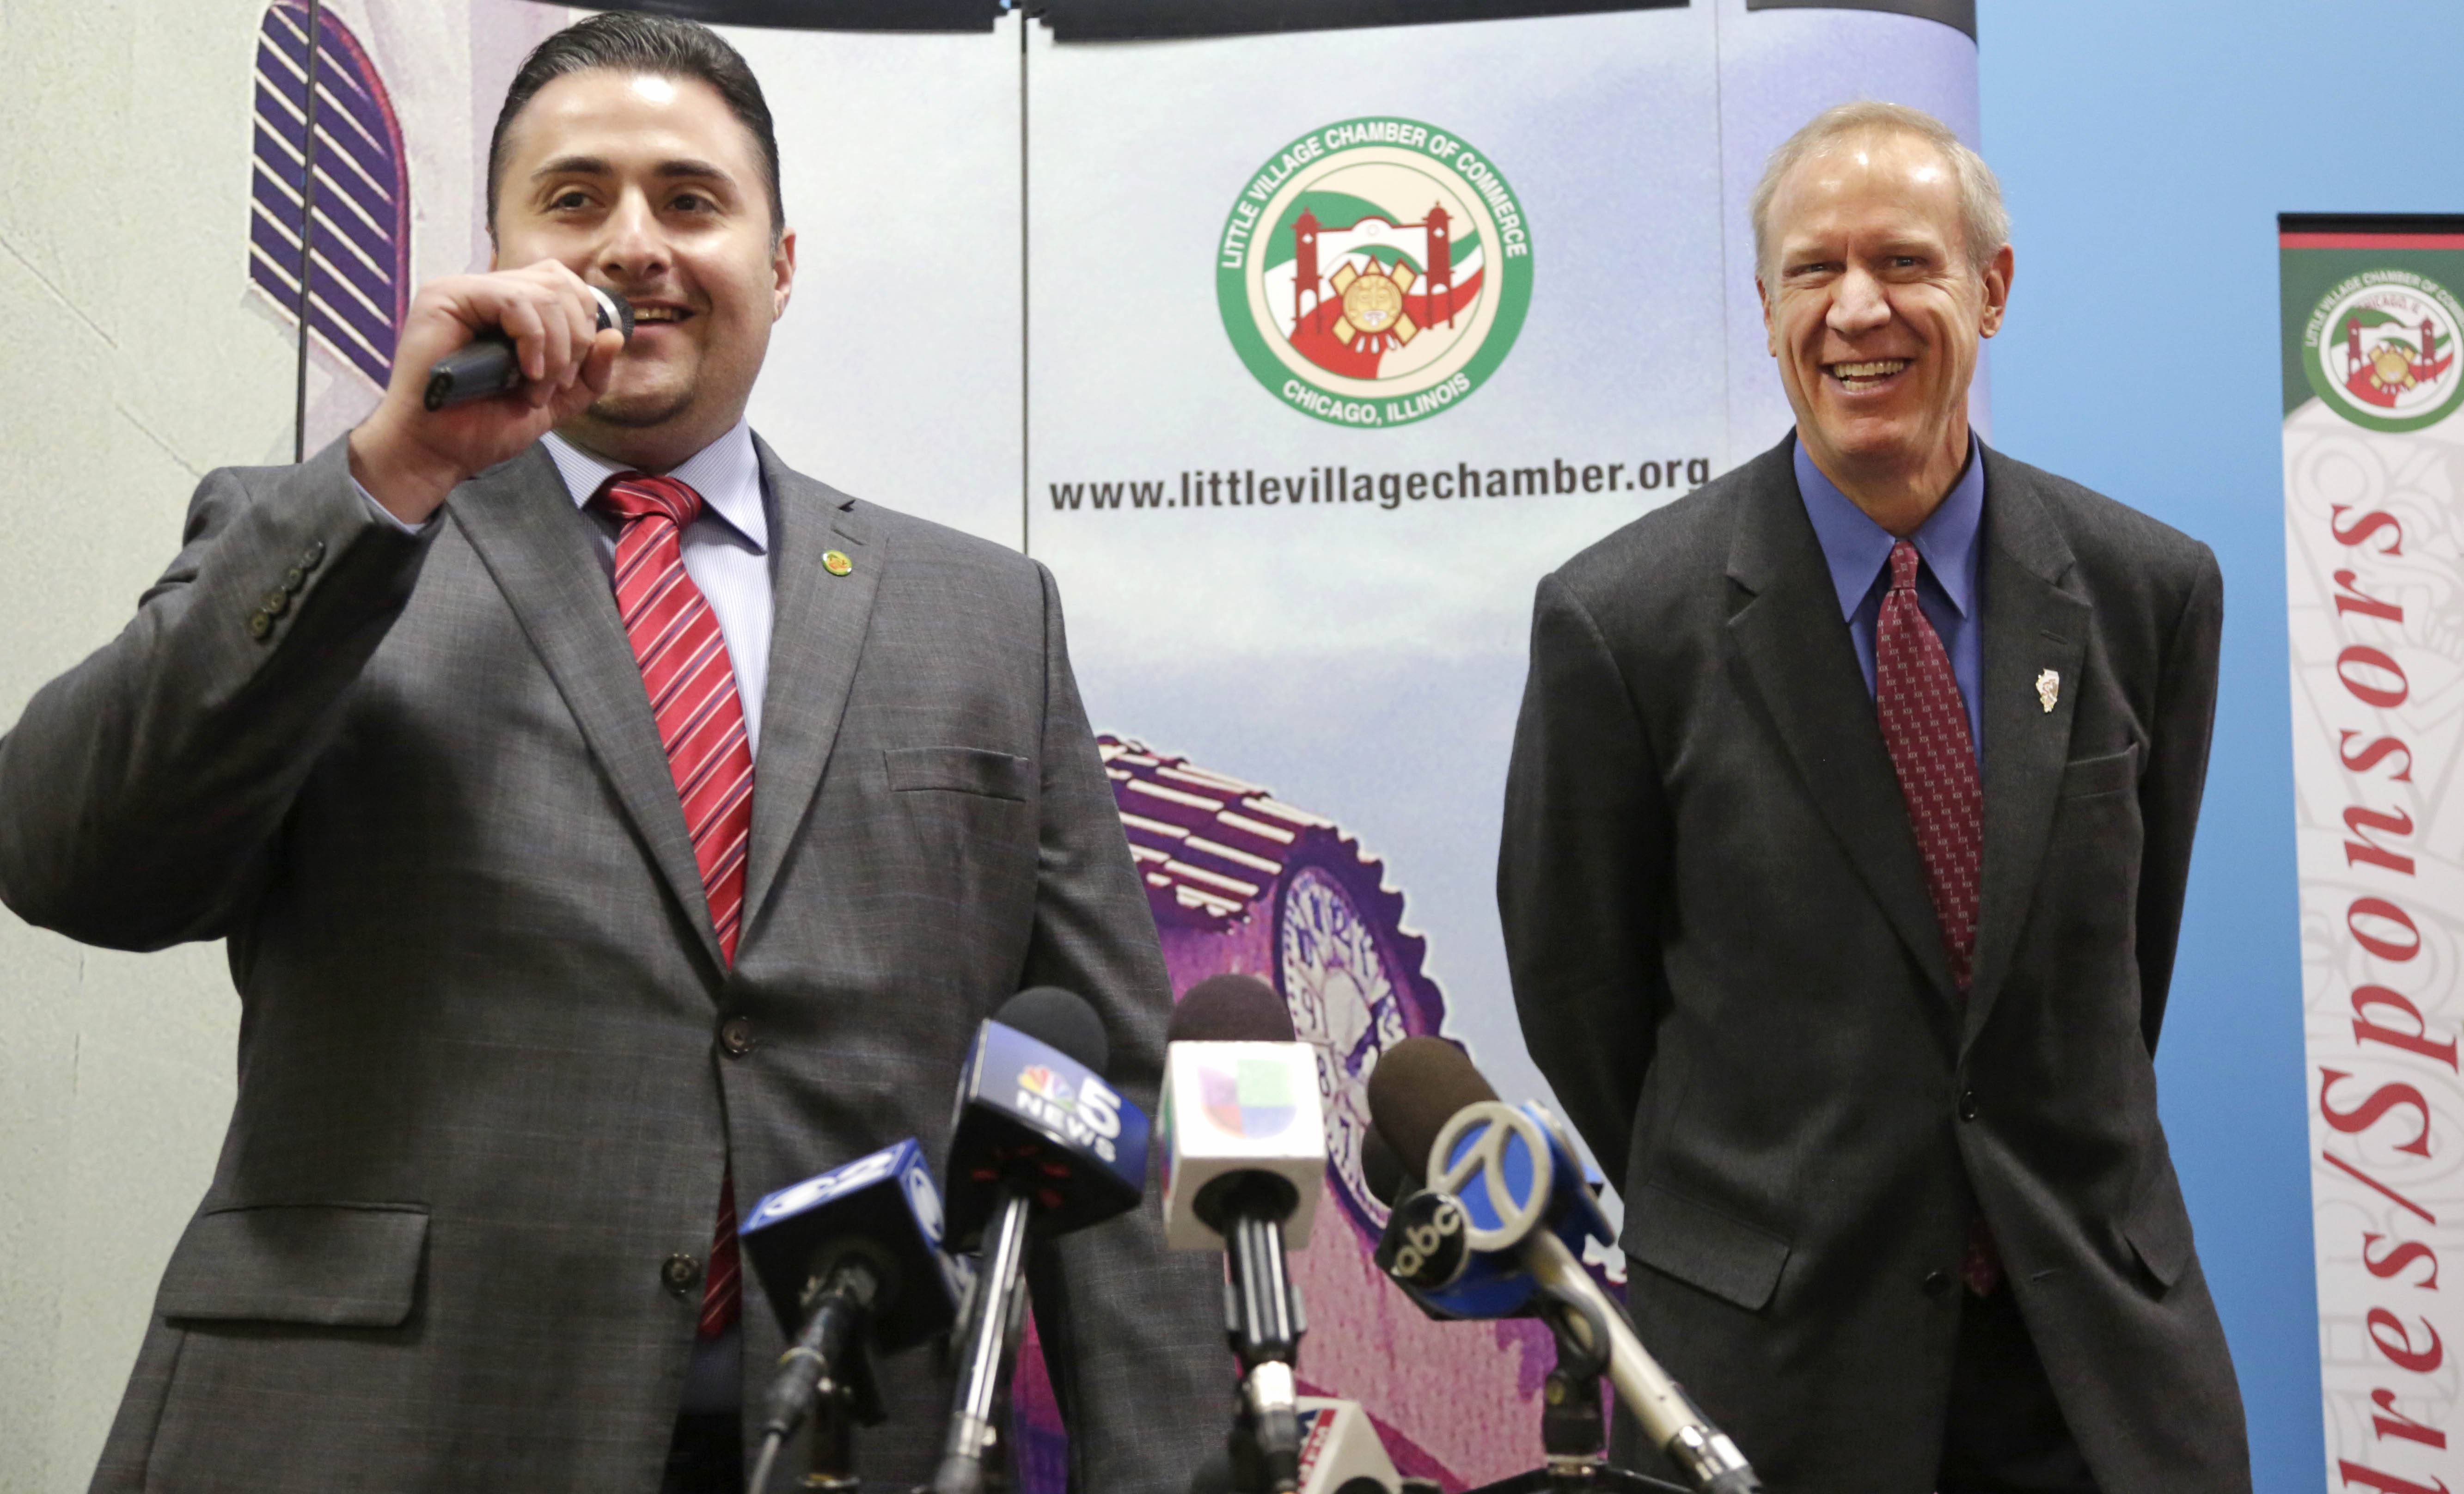 Julio Rodriguez introduces Gov. Bruce Rauner to business leaders Friday in the Little Village neighborhood of Chicago. More than two months after taking the reins of one of the nation's most immigrant-friendly states, Rauner has offered mixed signals about his stance on immigration.